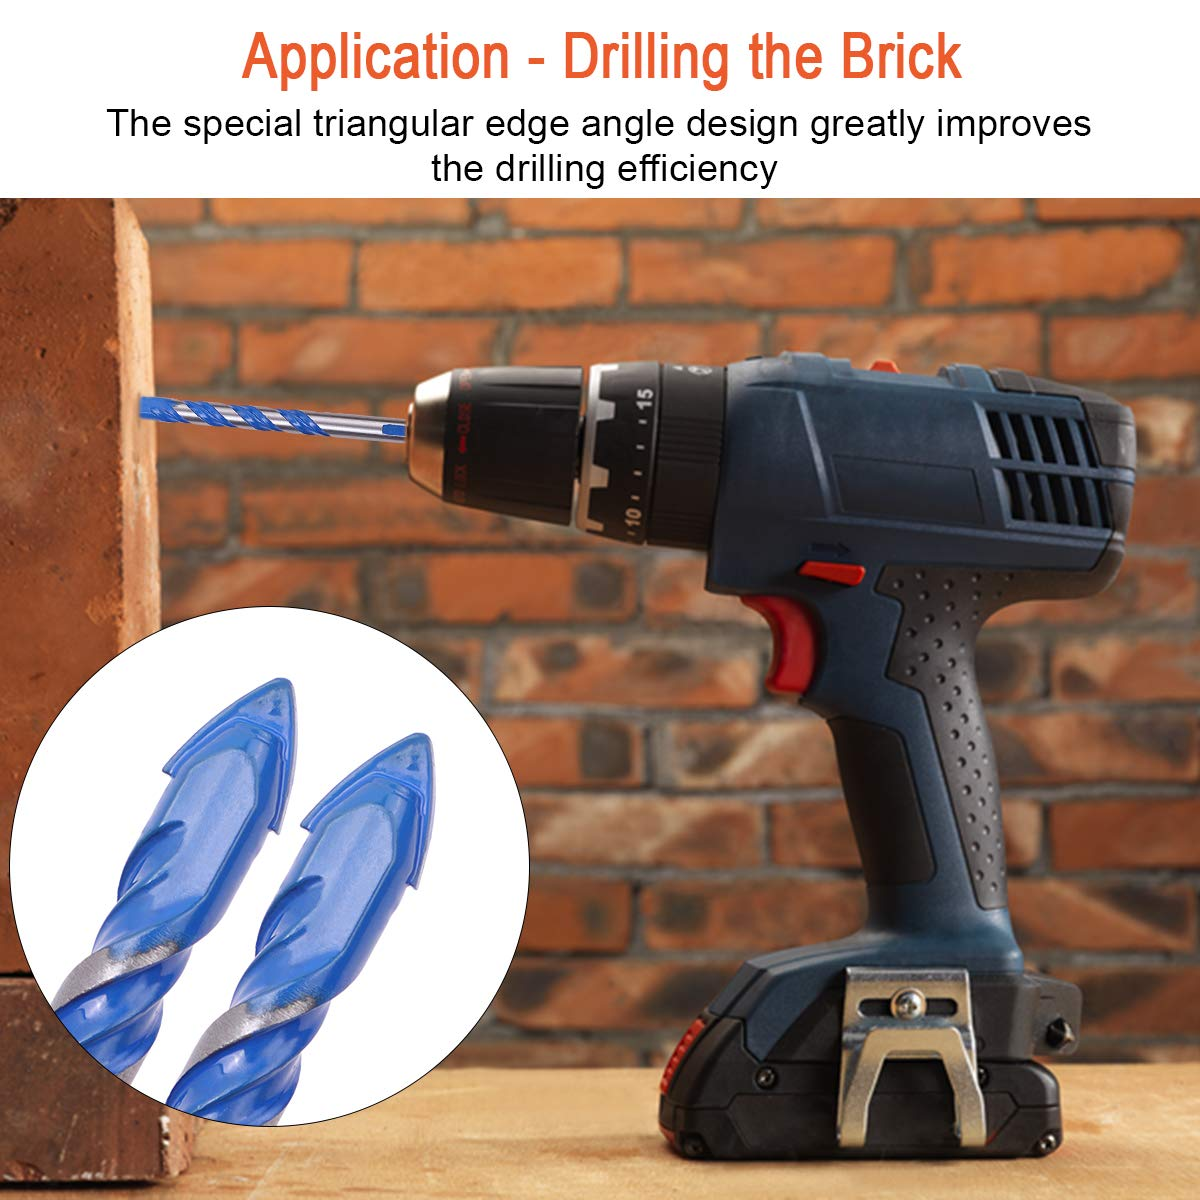 8 10,12mm 6 Multifunctional 5 PCS Masonry Drill Bits Set,Ceramic Tile Drill Bits for/Concrete Plastic Ceramic Tile Glass Cement Brick Wall Mirror and Wood with size 6 Black